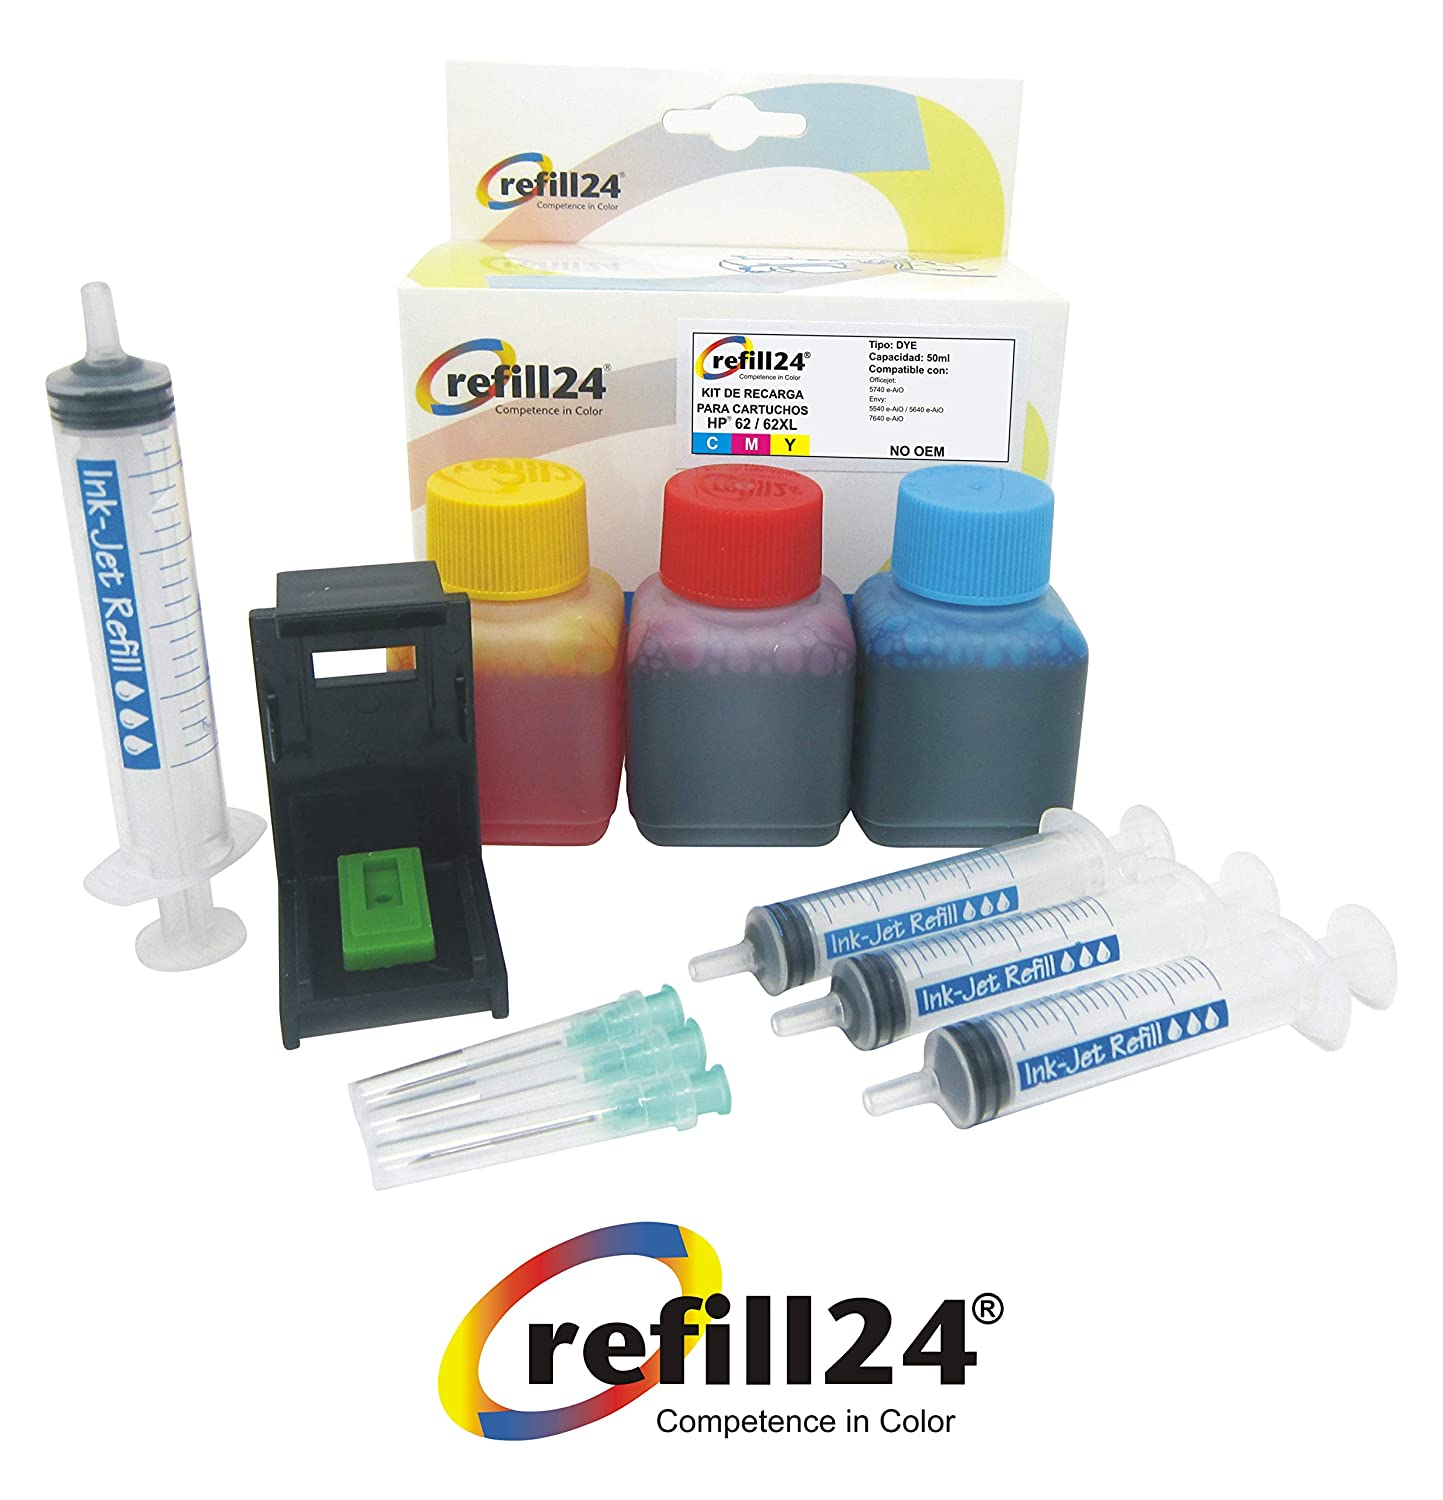 Kit de Recarga para Cartuchos de Tinta HP 62, 62 XL Color ...